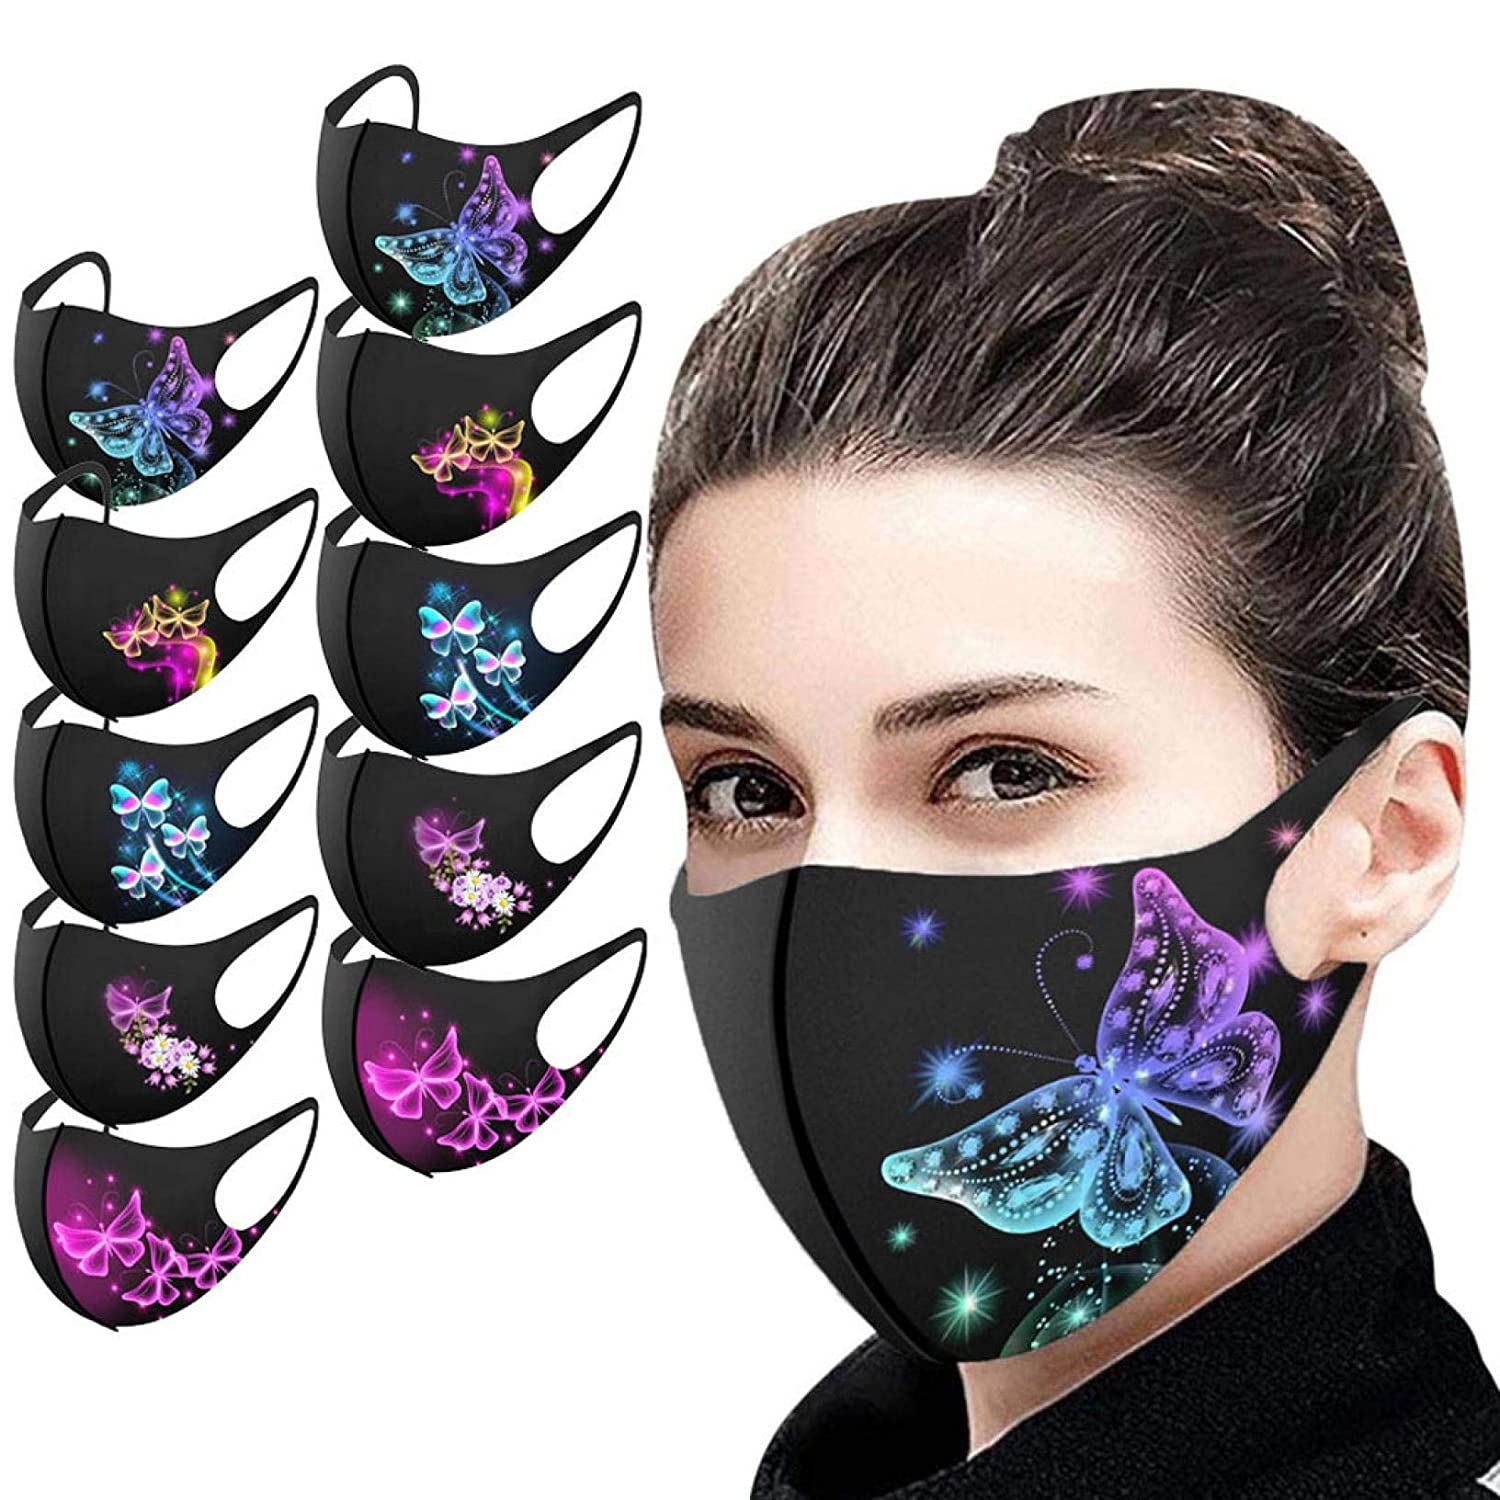 【USA In Stock 】10PCS Adults Butterfly Print Face Bandana_Covering_MASK Ice Silk Face Protective for Women and Men, Fashion Neutral Turban Washable Reusable Anti-Haze Dustproof Face Fabric For Cycling Camp